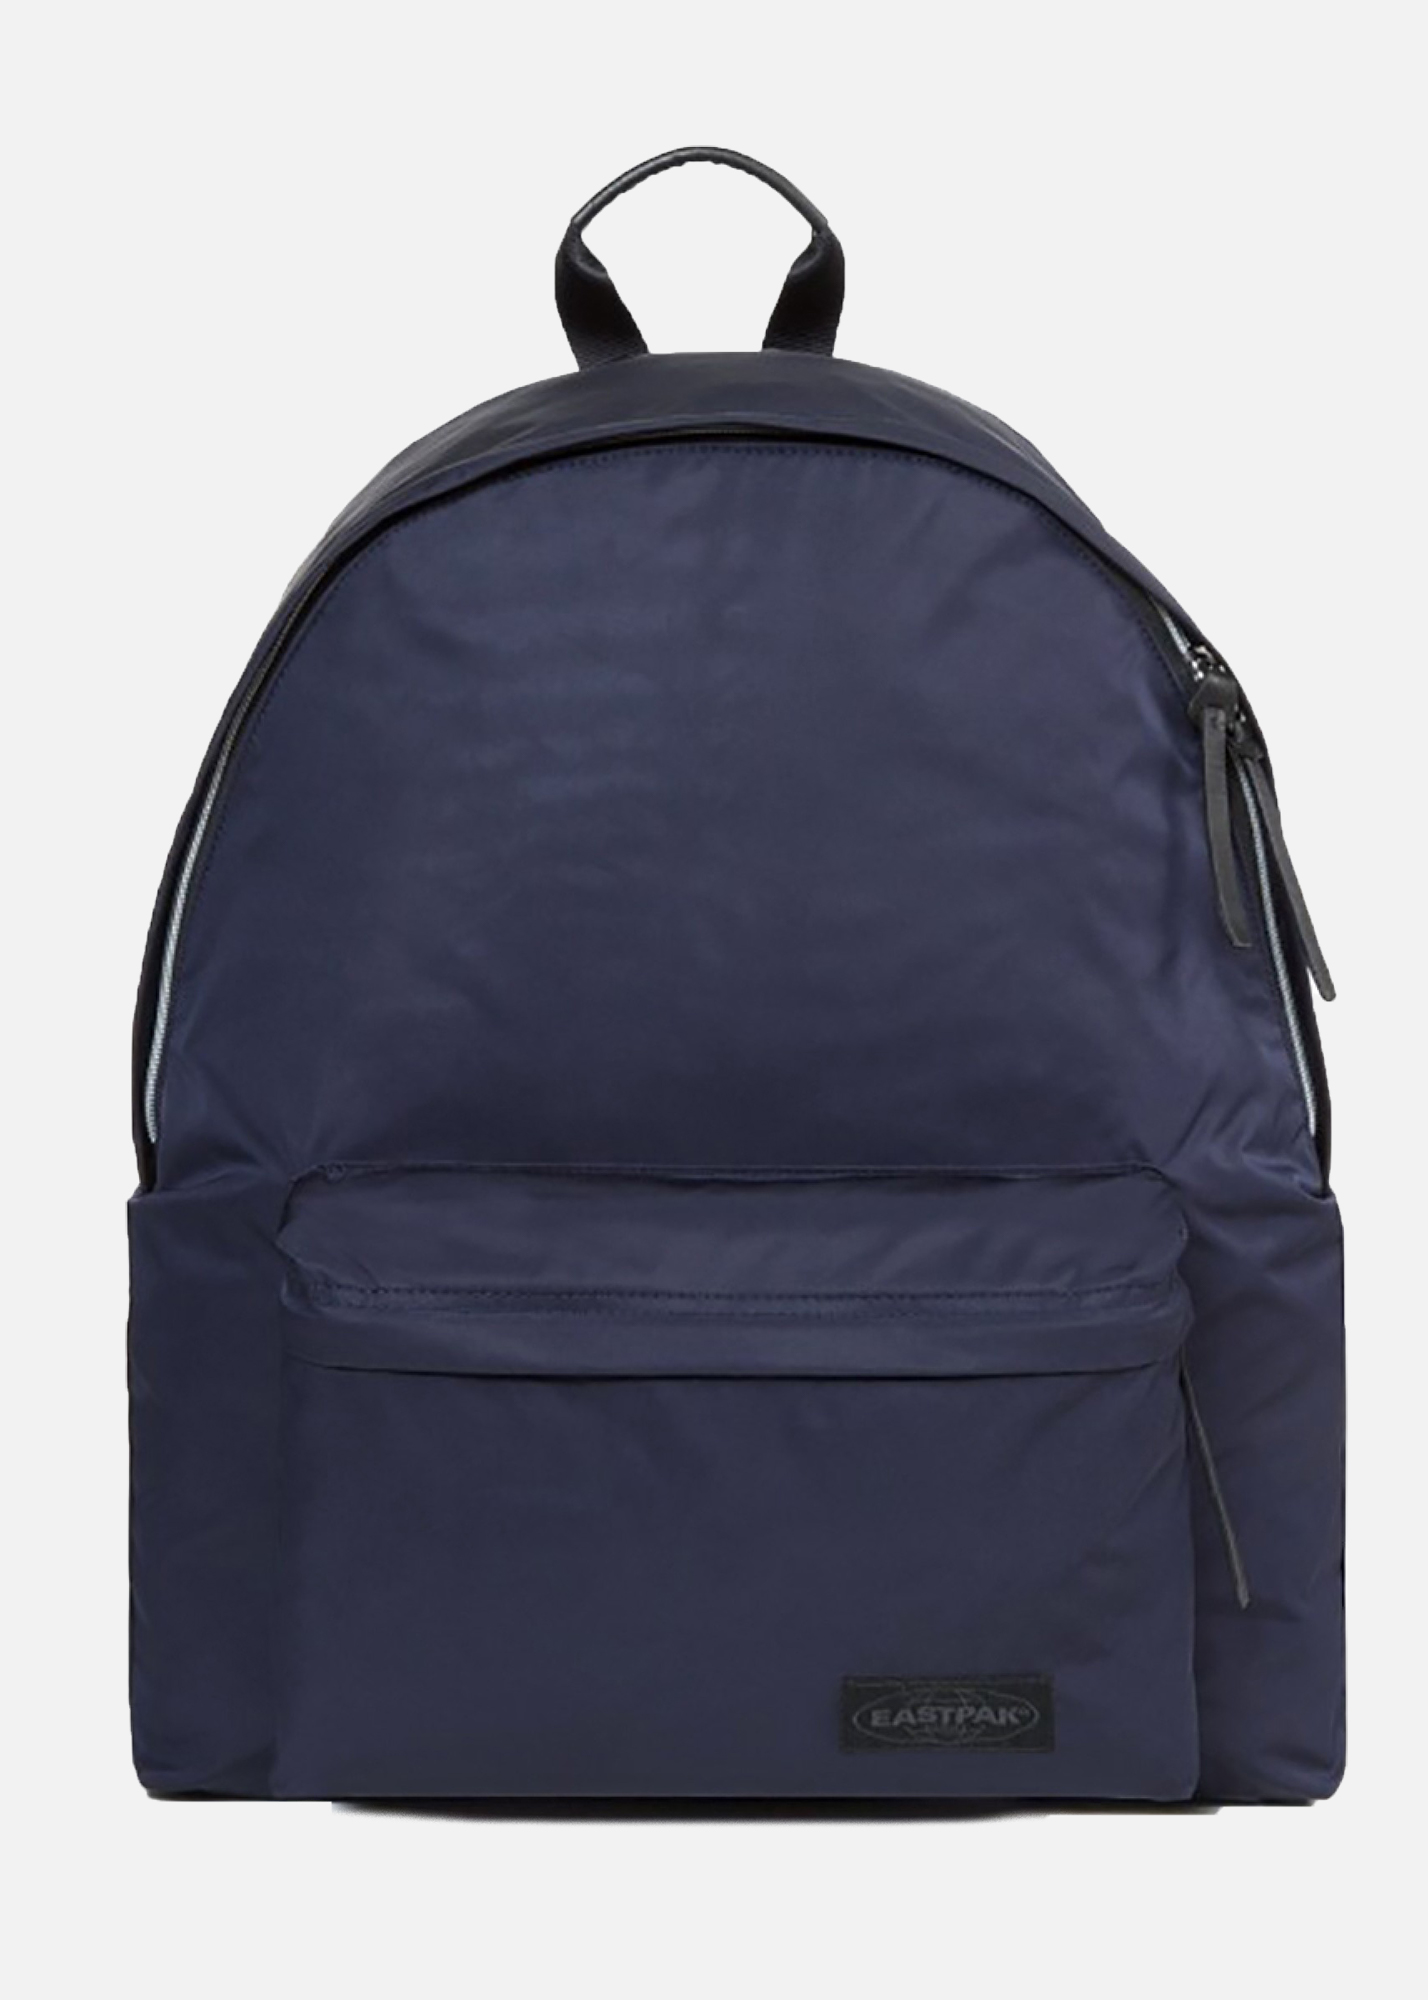 00b15aaf76 EASTPAK EK79906U BLUE EDITION PADDED PAK R 24L BACKPACK ...